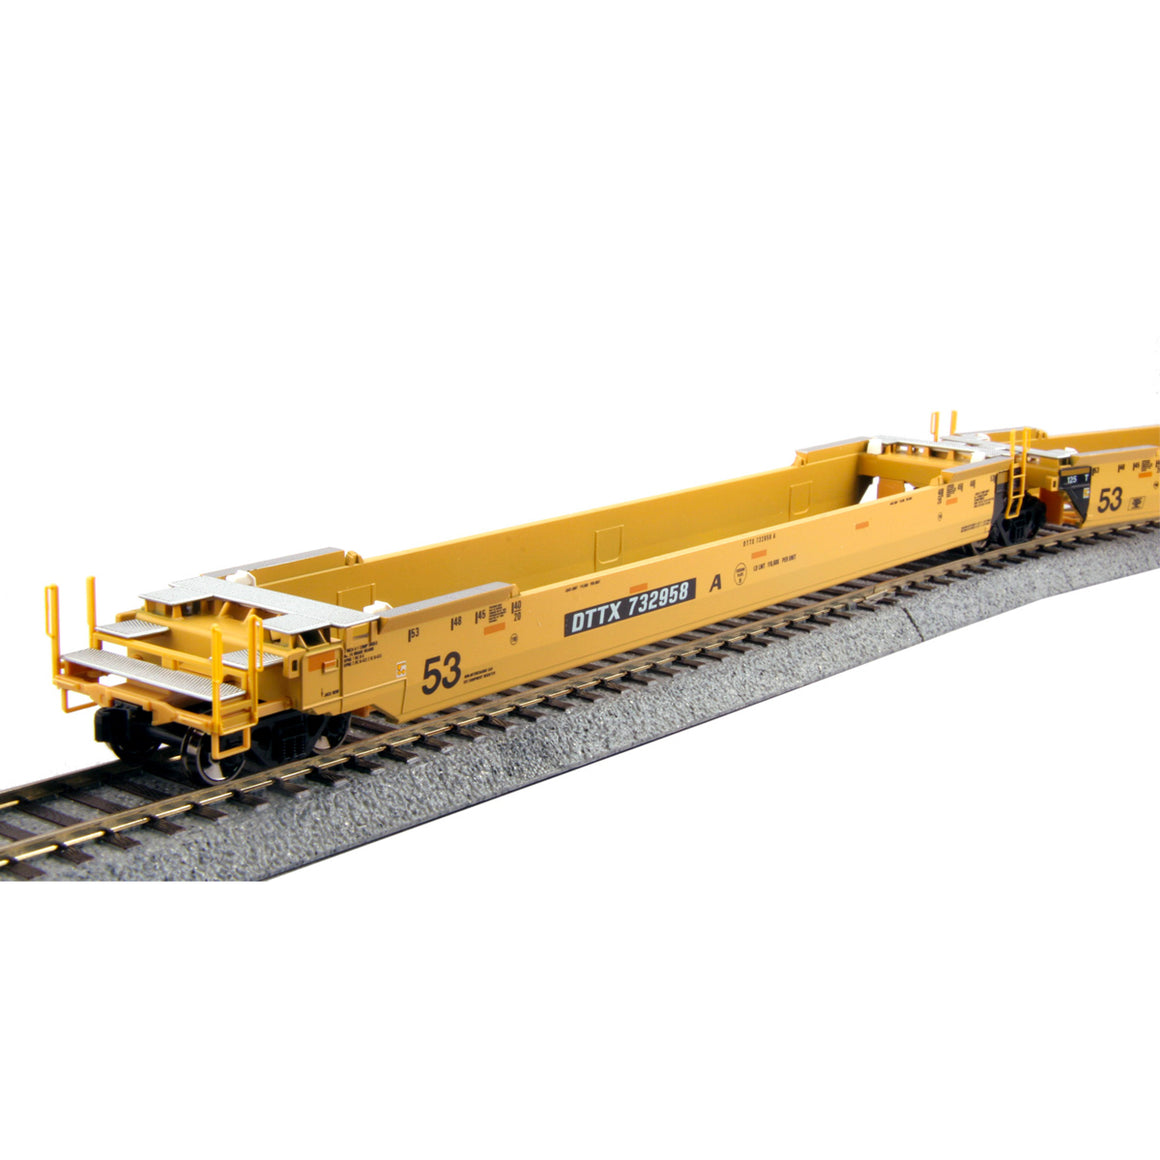 HO Scale: Gunderson Maxi-IV Articulated Well Cars - TTX 'Old Logo'